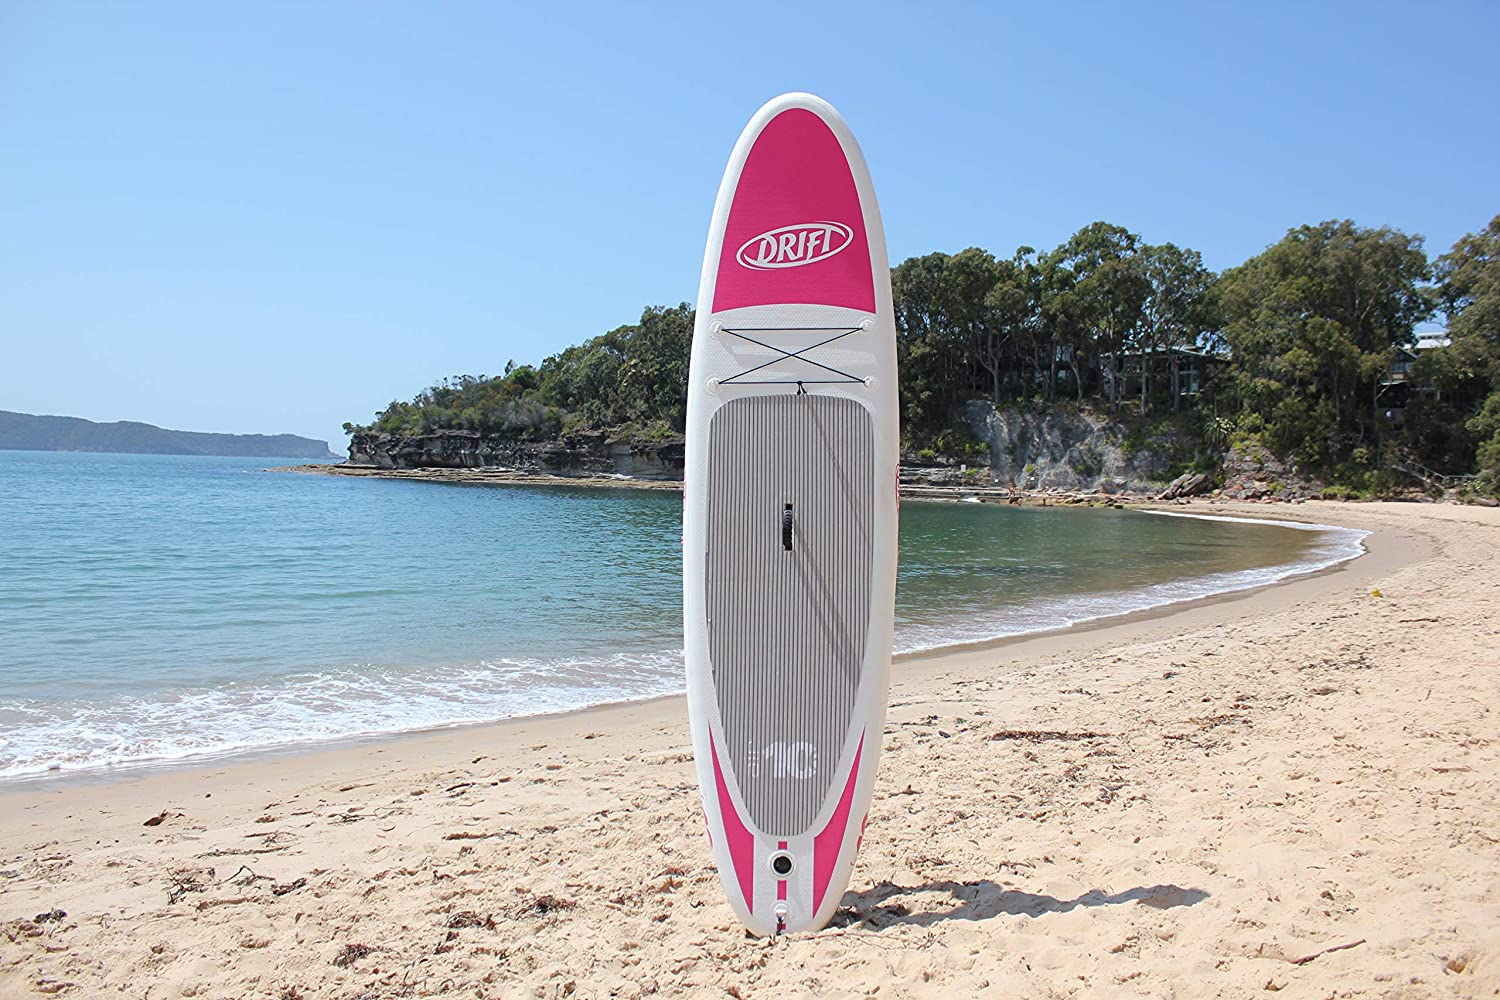 f7f60ae1c6a4 Amazon.com : Inflatable Stand Up Paddle Board 'Pink Flower' SUP (10.6) :  Sports & Outdoors